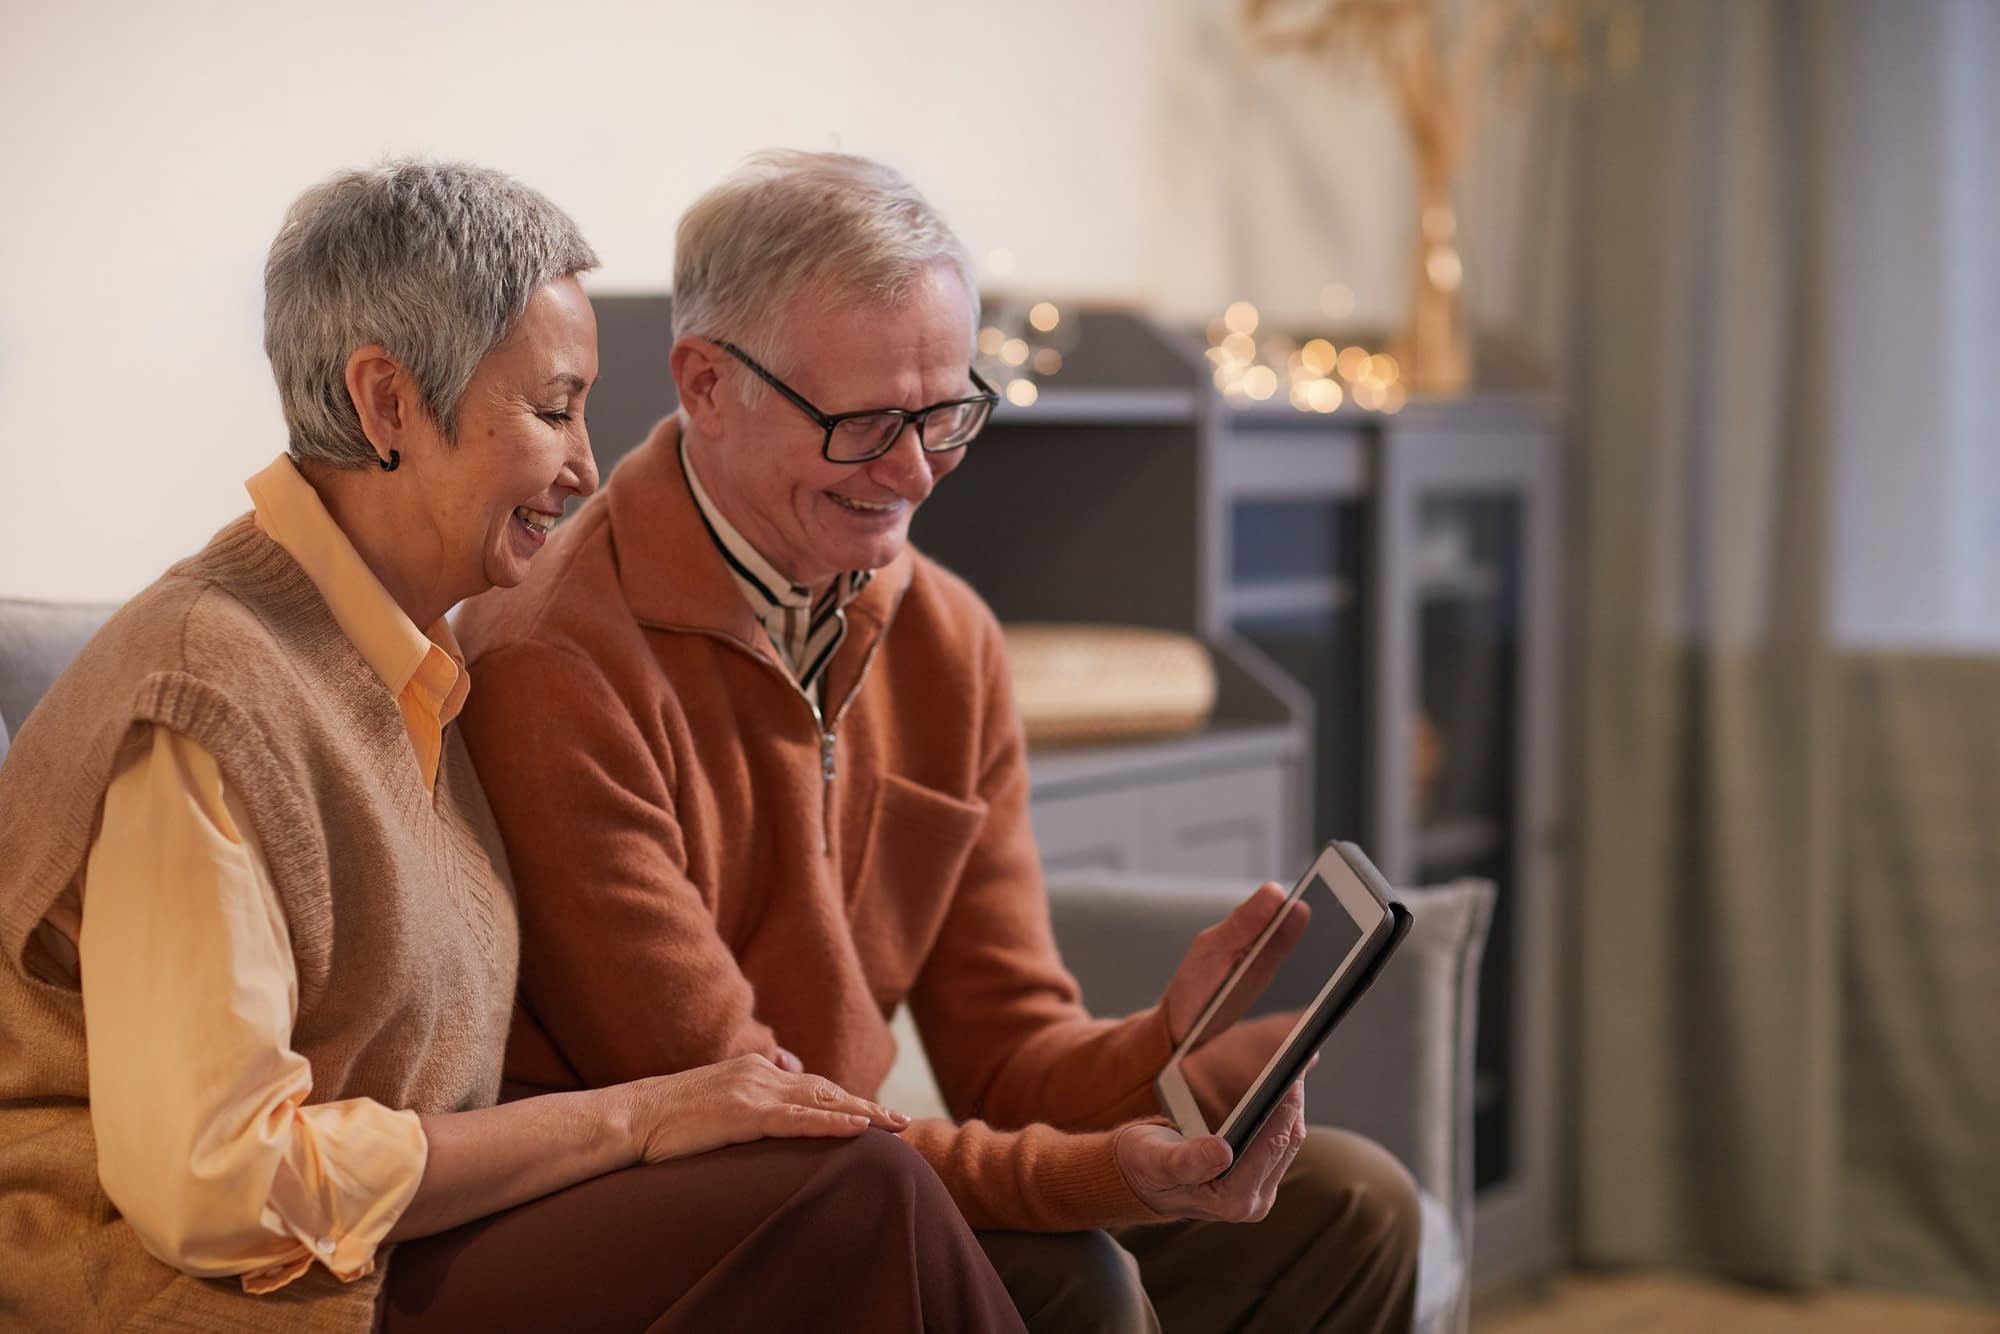 New Tech in Senior Homes: 4 Must-Have Smart Home Technologies